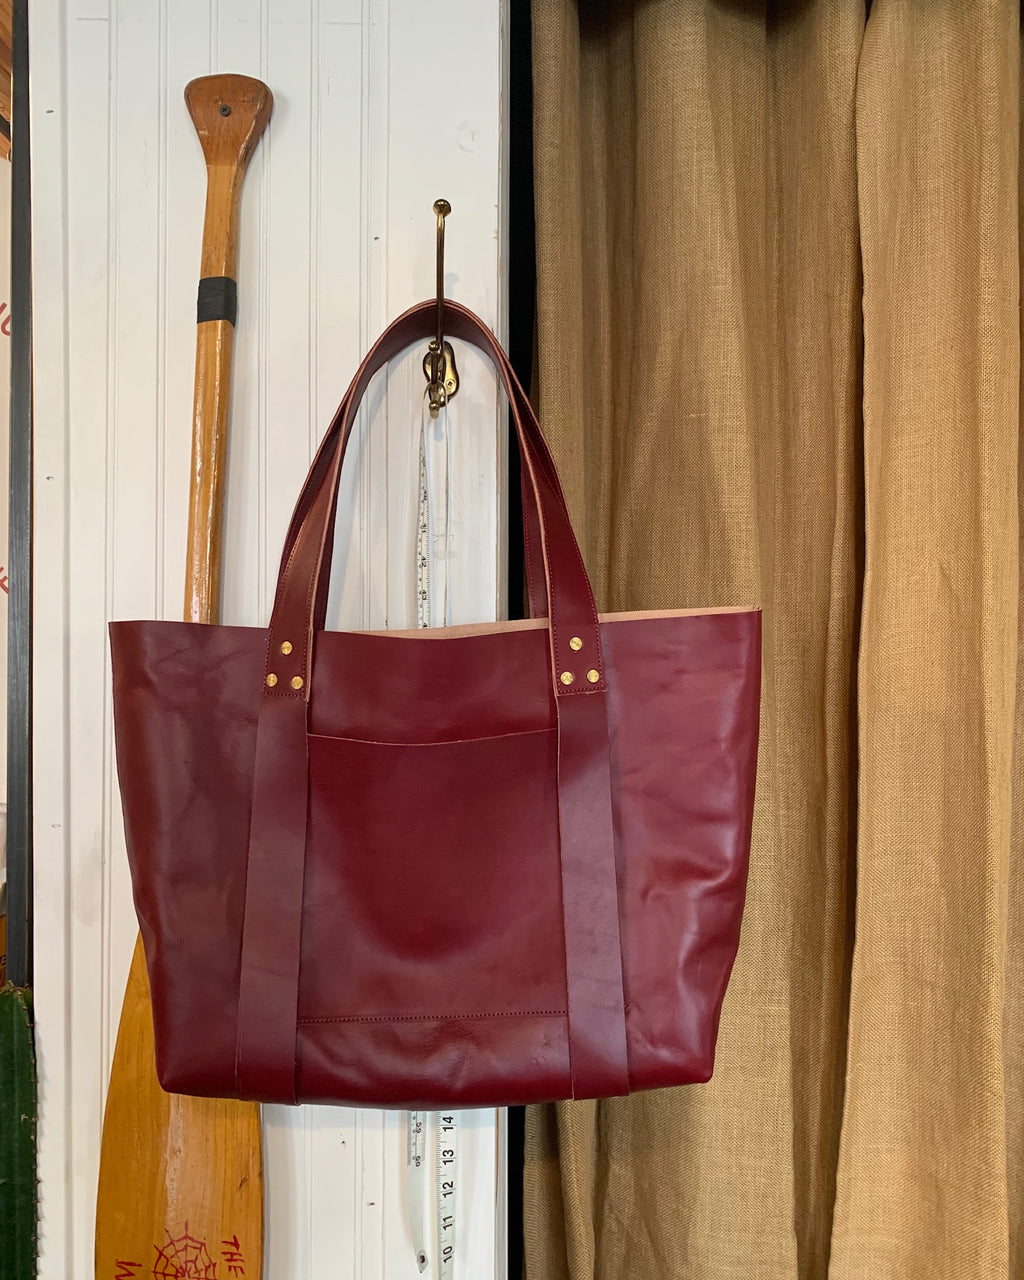 Generations Bag : Limited Edition Oxblood